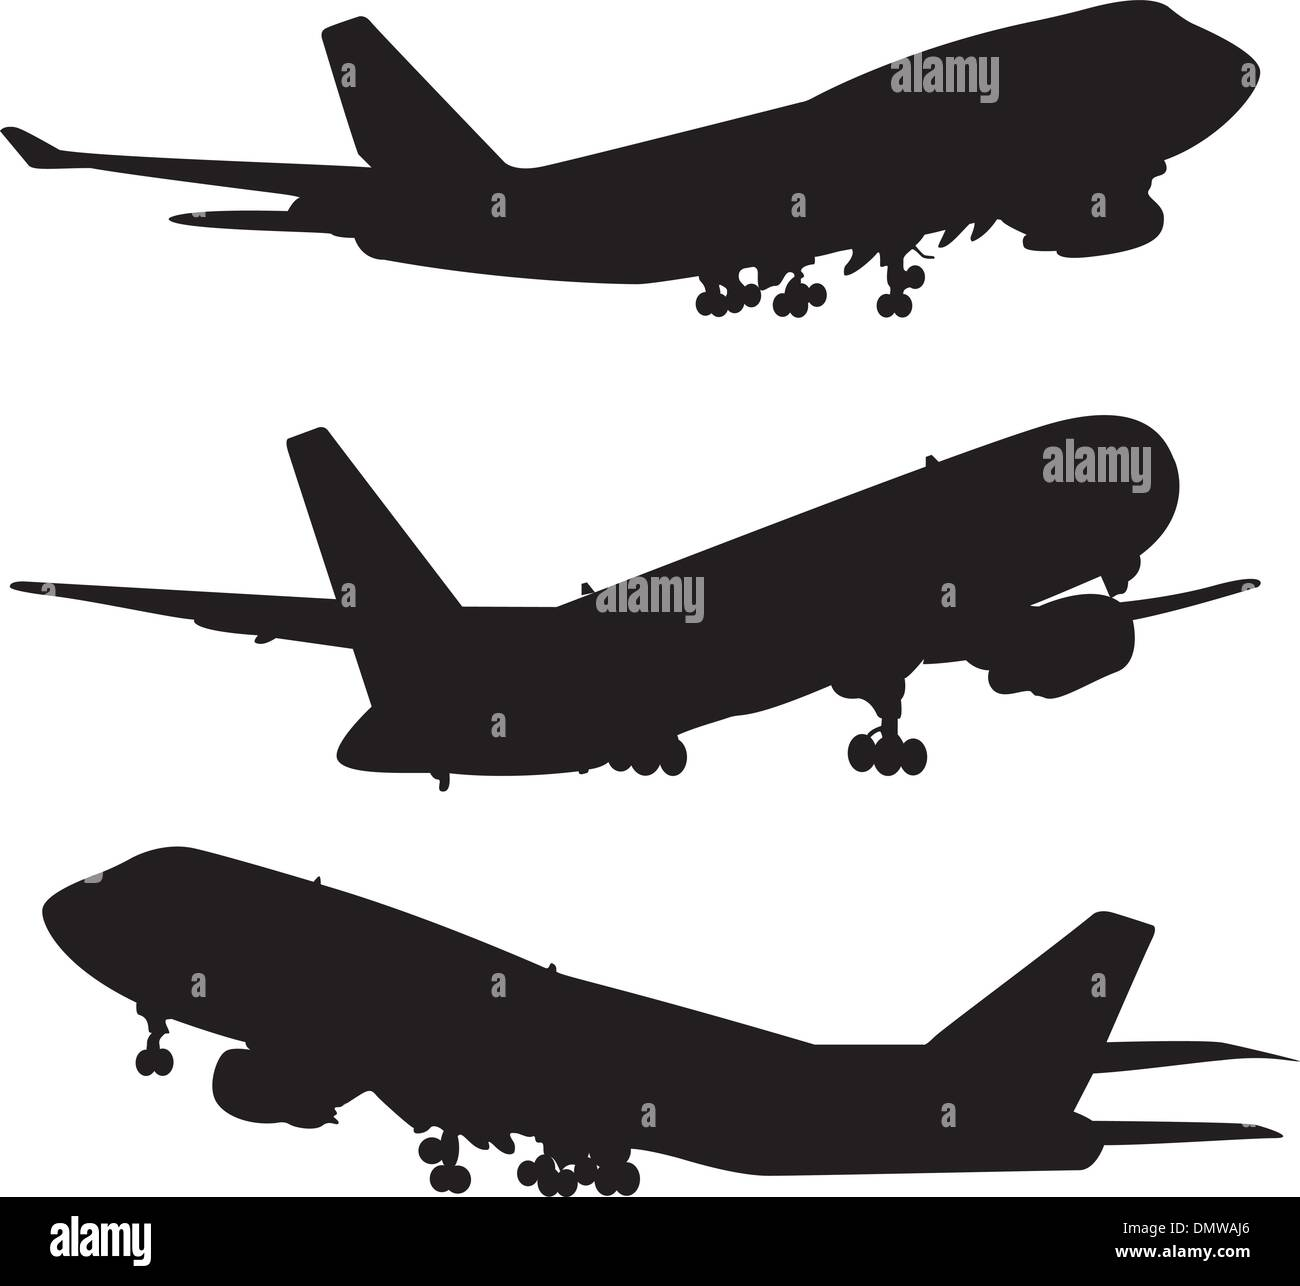 airplane silhouette set - Stock Image